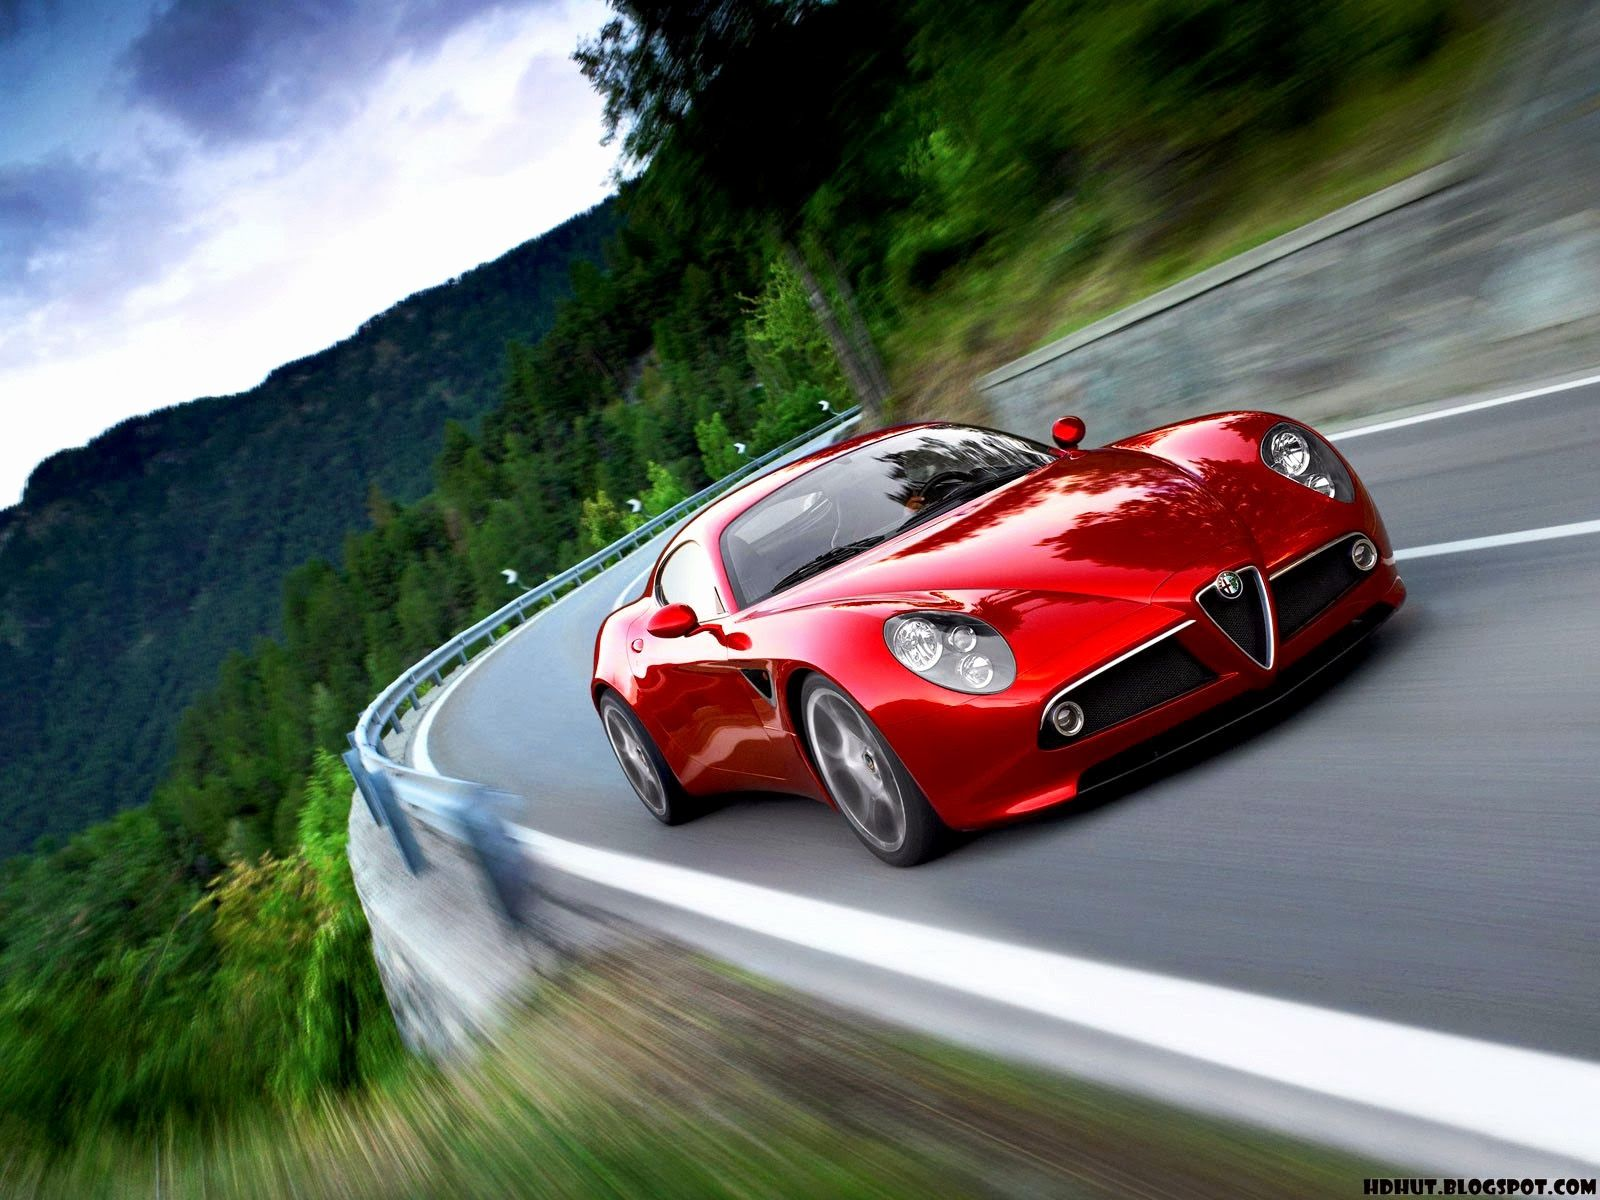 Top Cars Wallpapers Luxury top 27 Most Dashing and Amazing Car ...